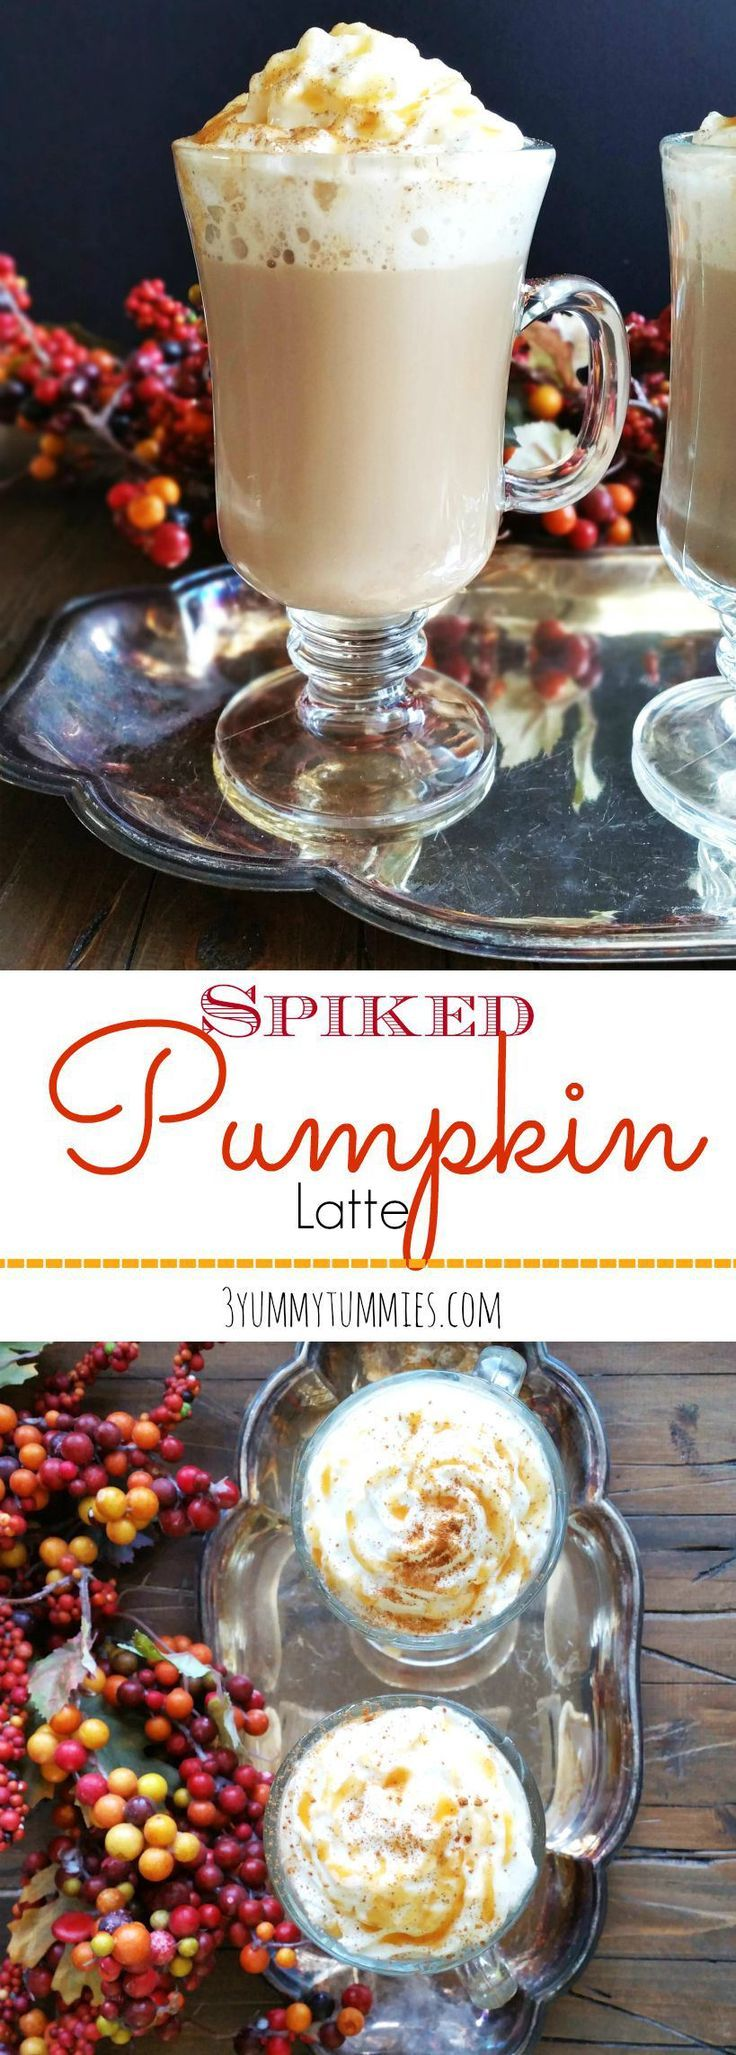 Rum Chata tops off this delicious caramel and pumpkin spice latte!